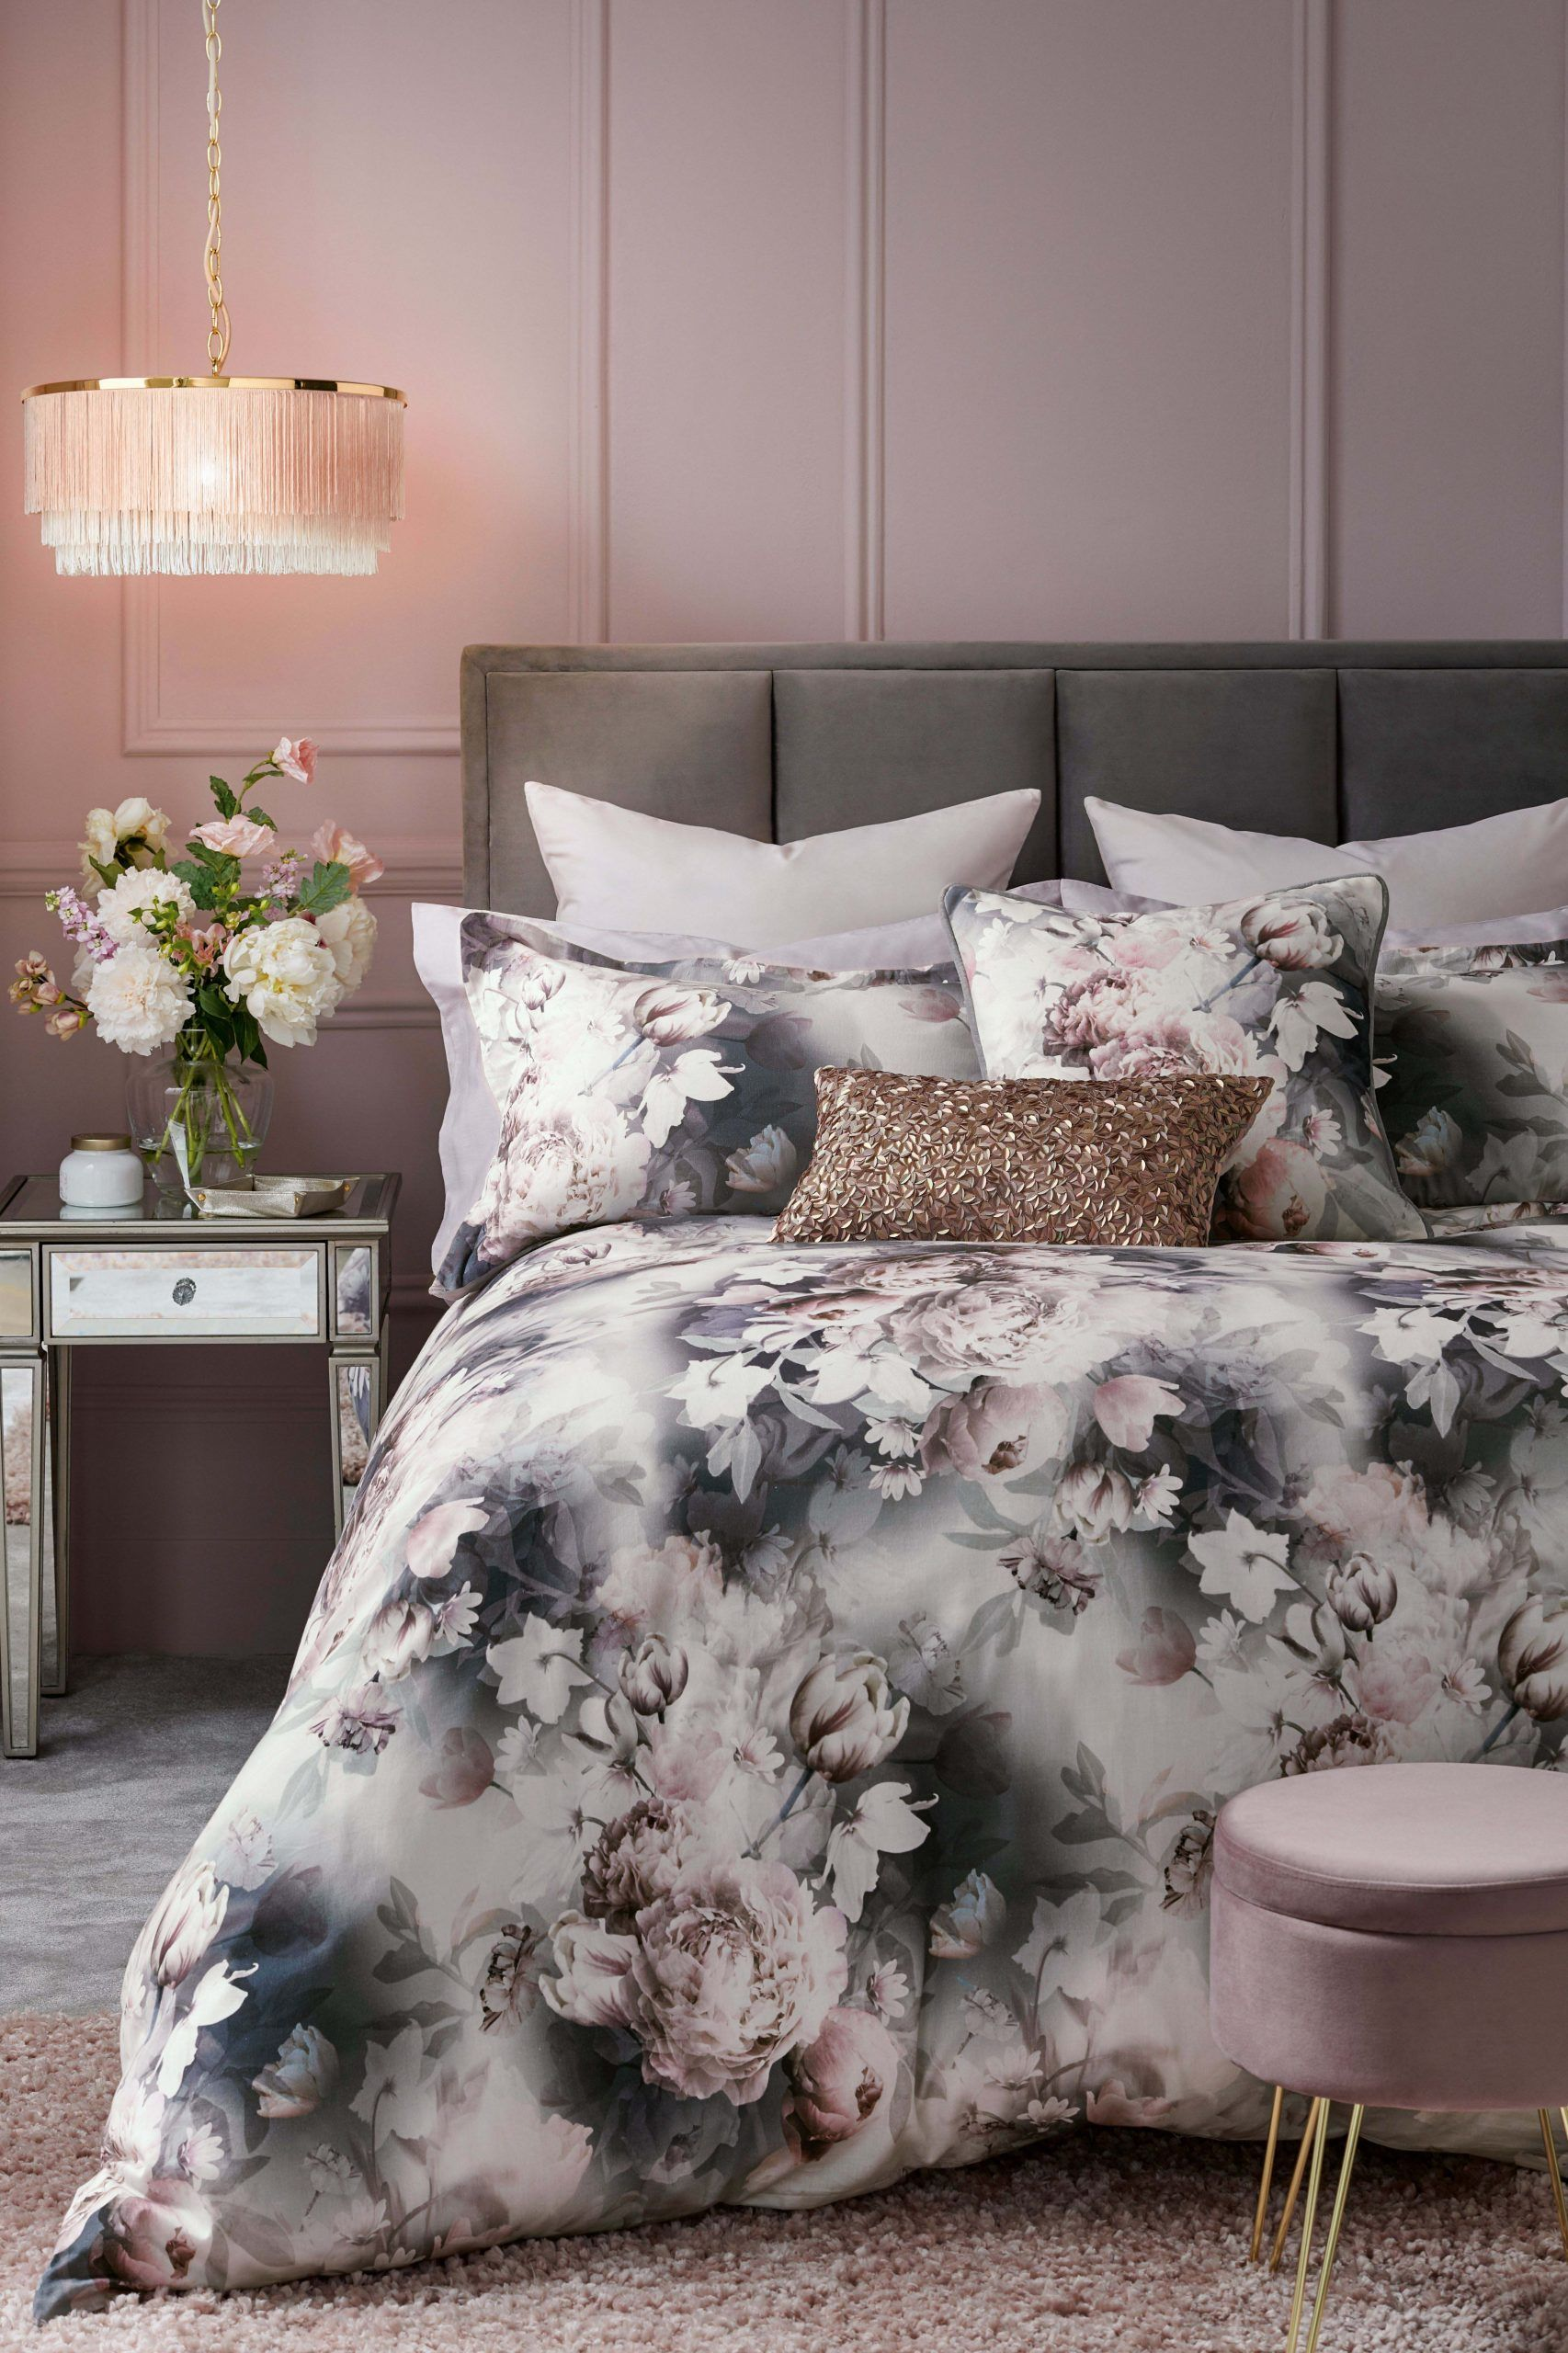 Buy Lipsy Ava Floral Duvet Cover And Pillowcase Set From The Next Uk Online Shop Ava Buy Cove In 2020 Bedding Inspiration Luxury Bedding Master Bedroom Duvet Bedding